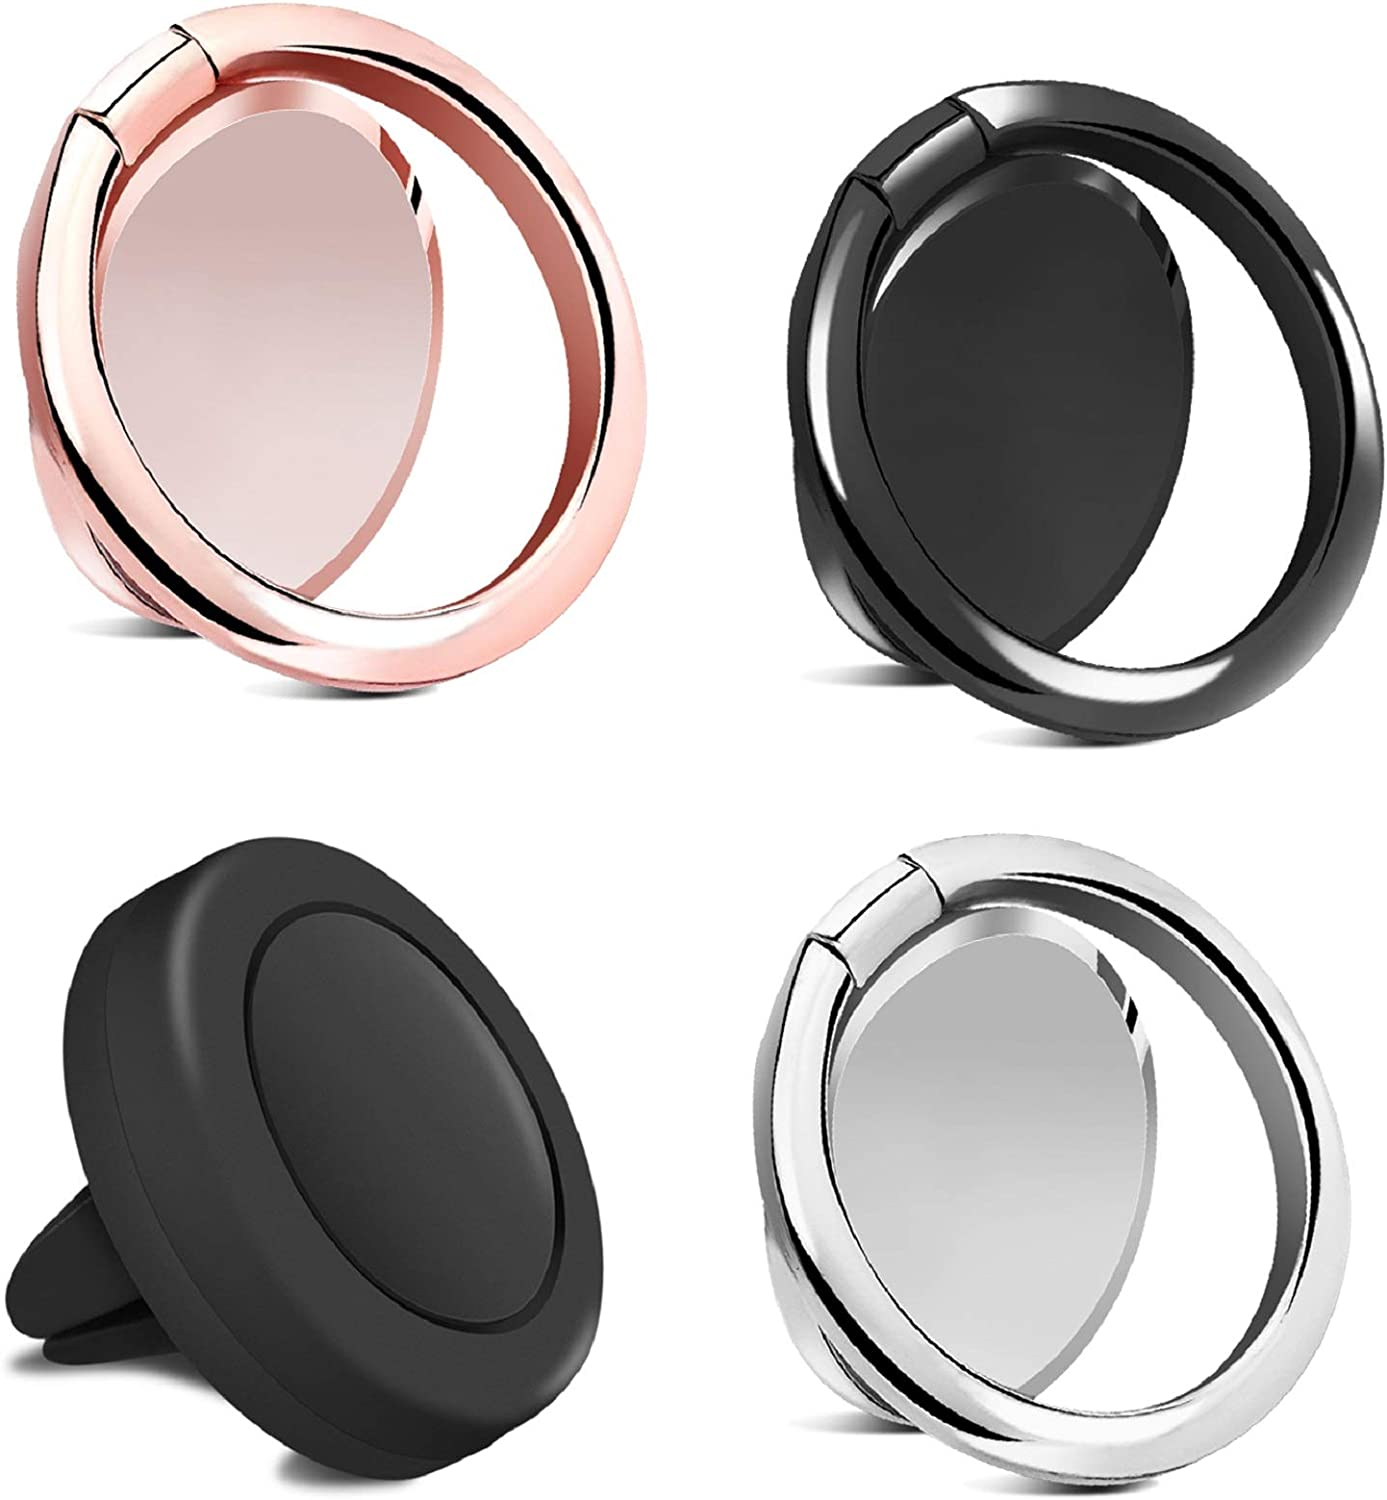 Votono 3 Pack Phone Ring Kickstand Phone Ring Holder Finger Kickstand for Magnetic Car Mount 360/° Rotation Silver